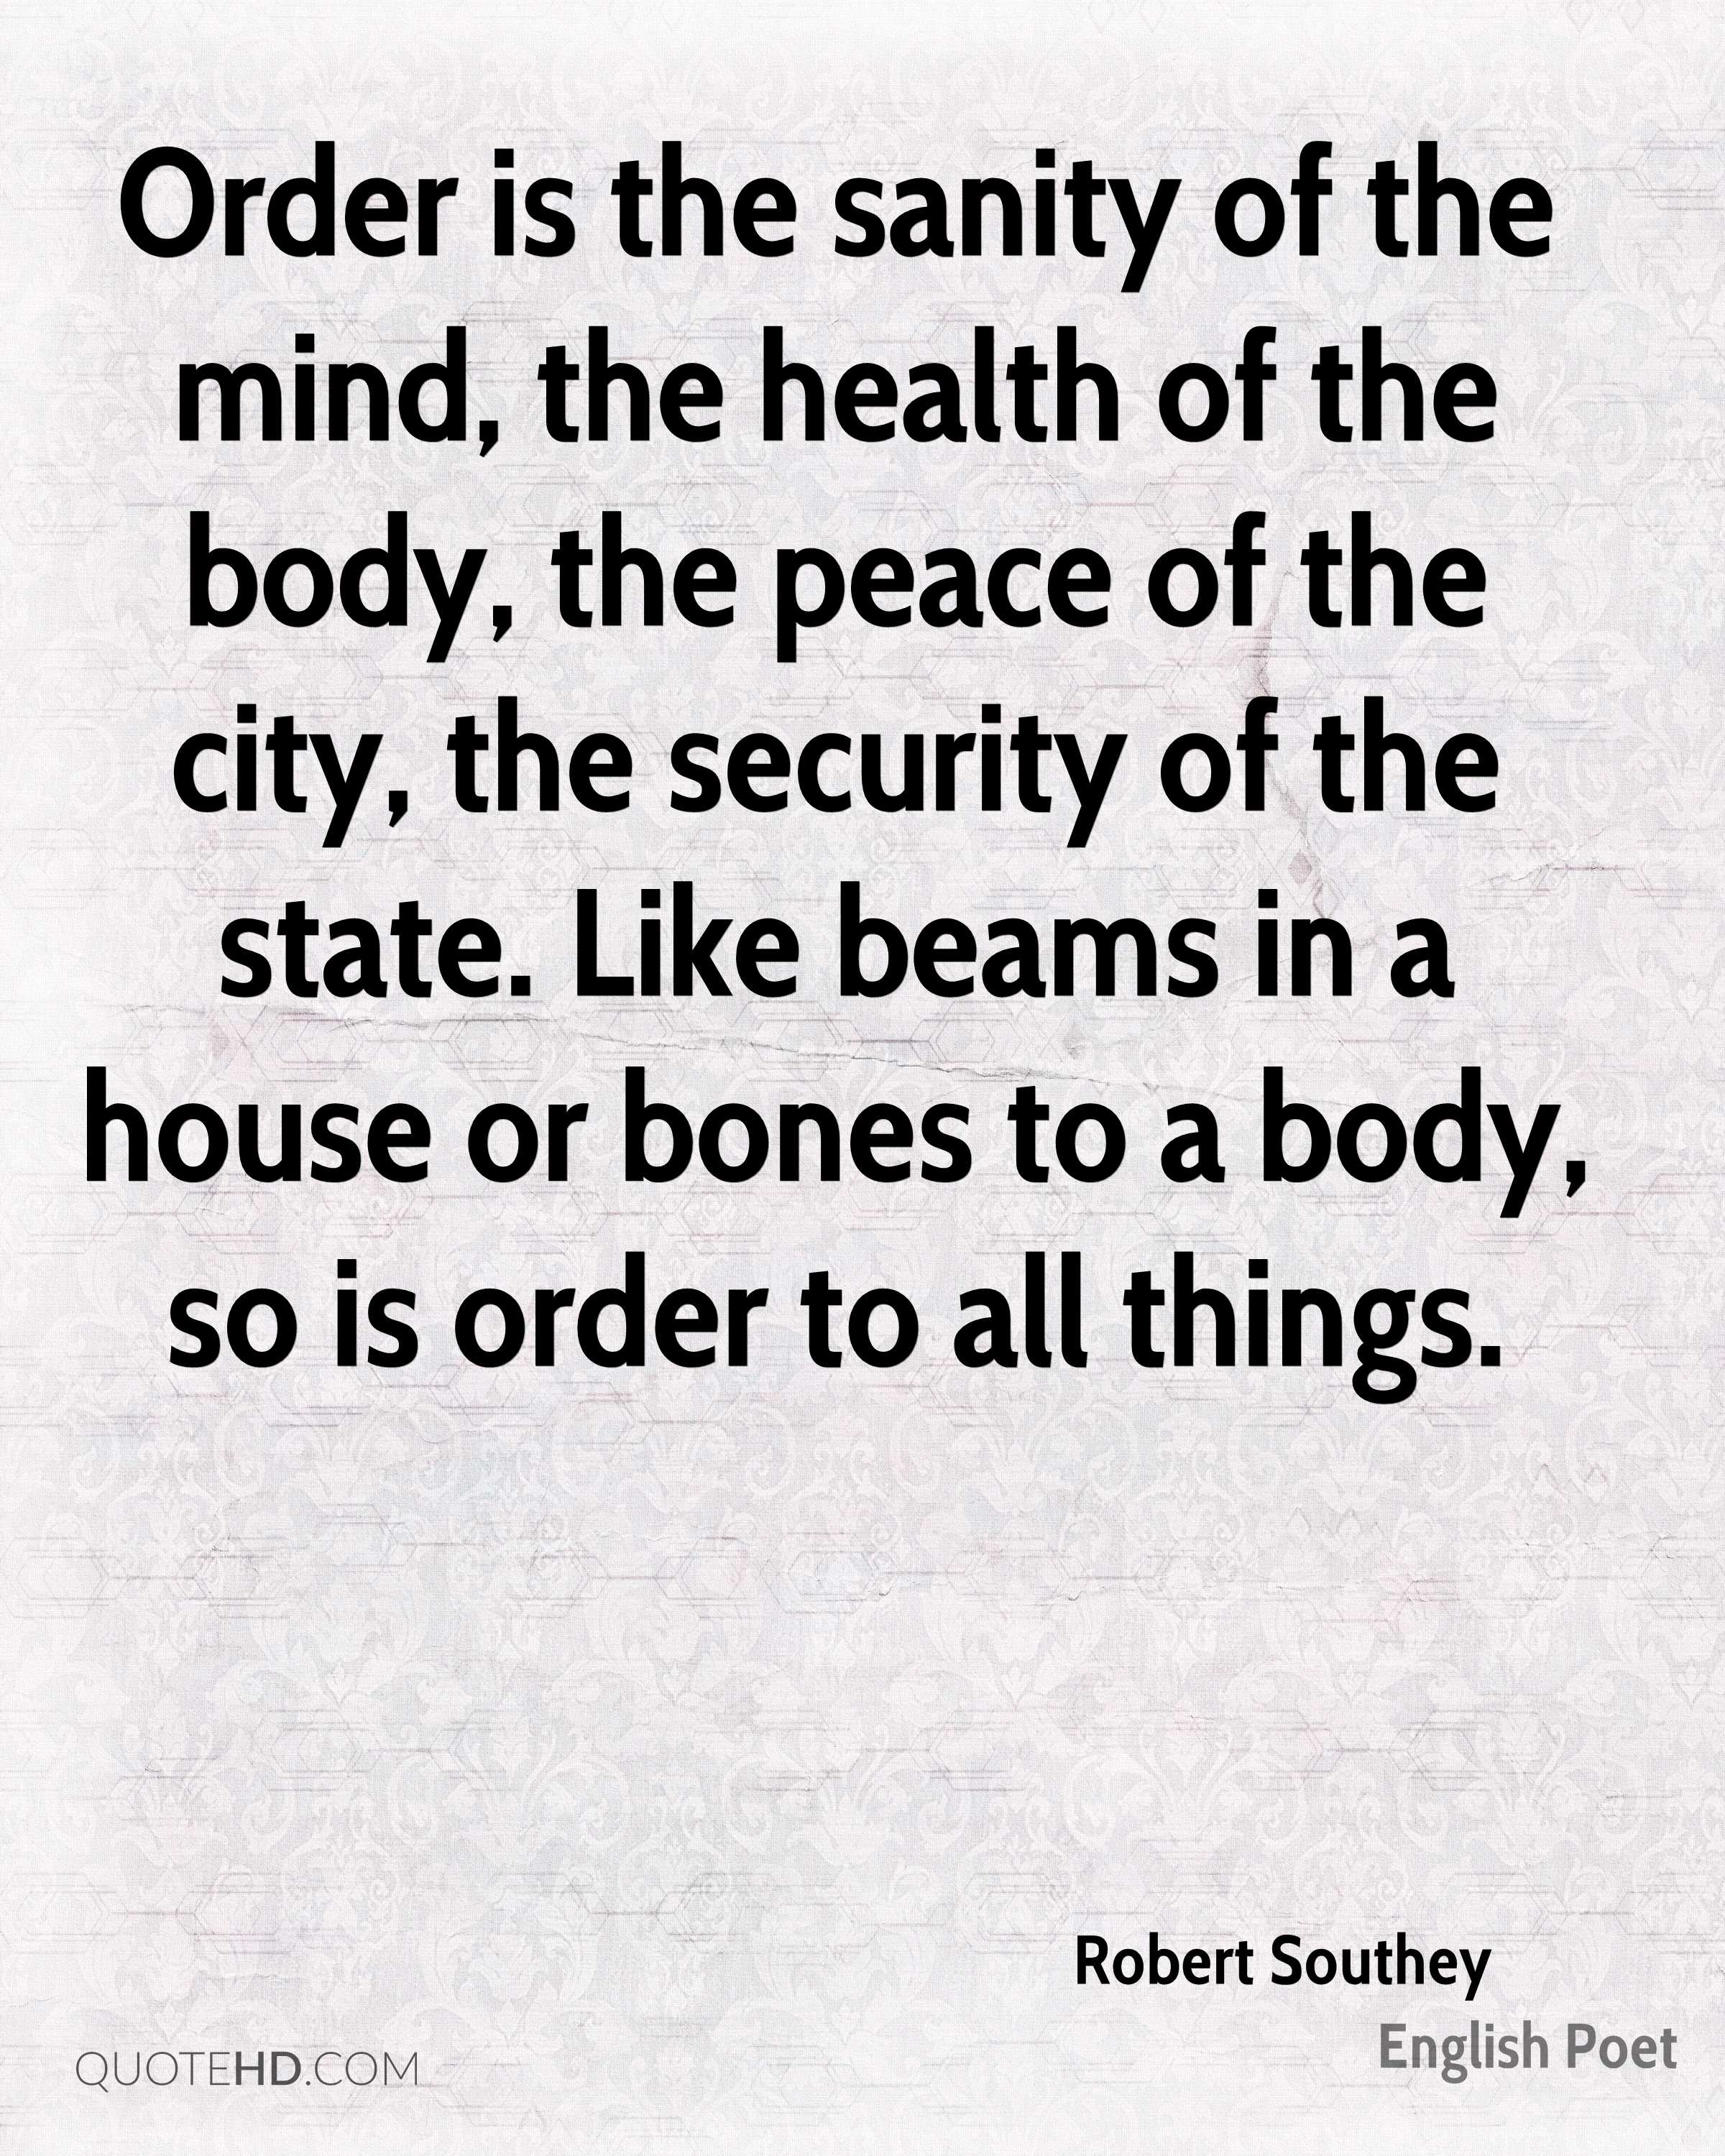 Order is the sanity of the mind, the health of the body, the peace of the city, the security of the state. Like beams in a house or bones to a body, so is order to all things.